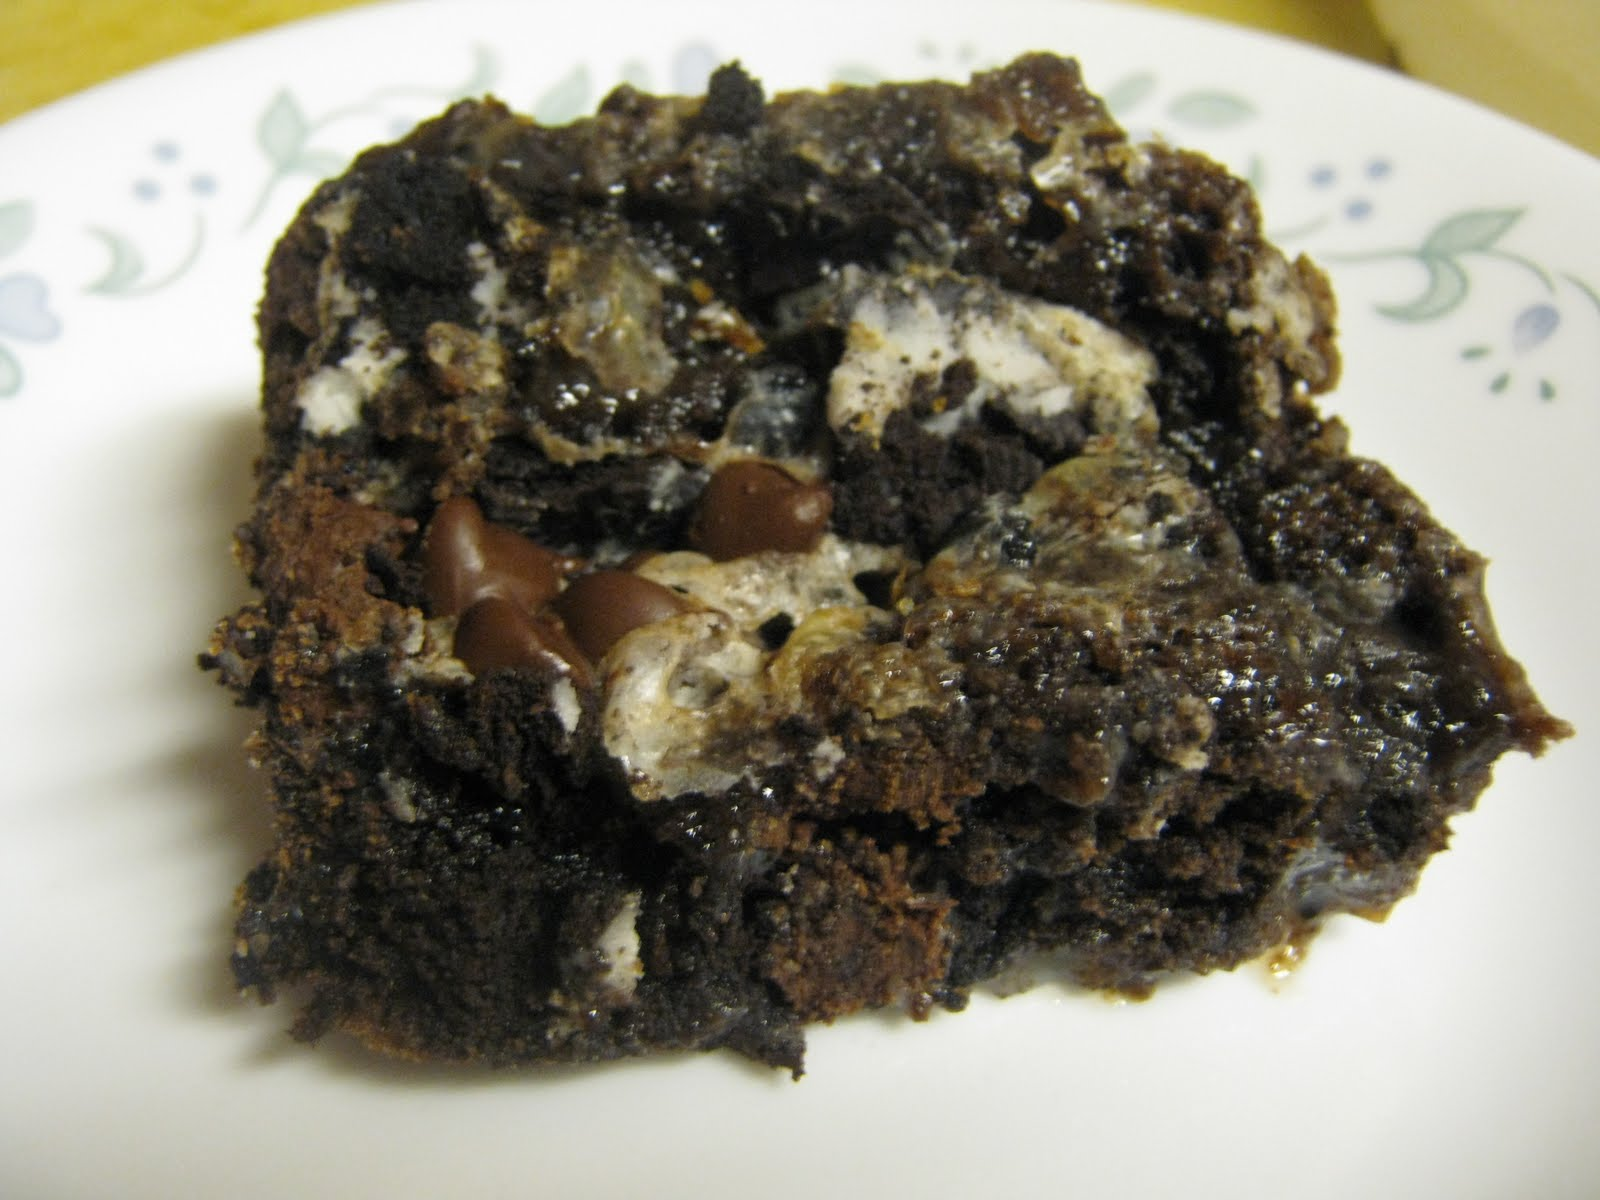 ... and Such: Decisions and Cookies n' Cream Double Chocolate Cake Bars